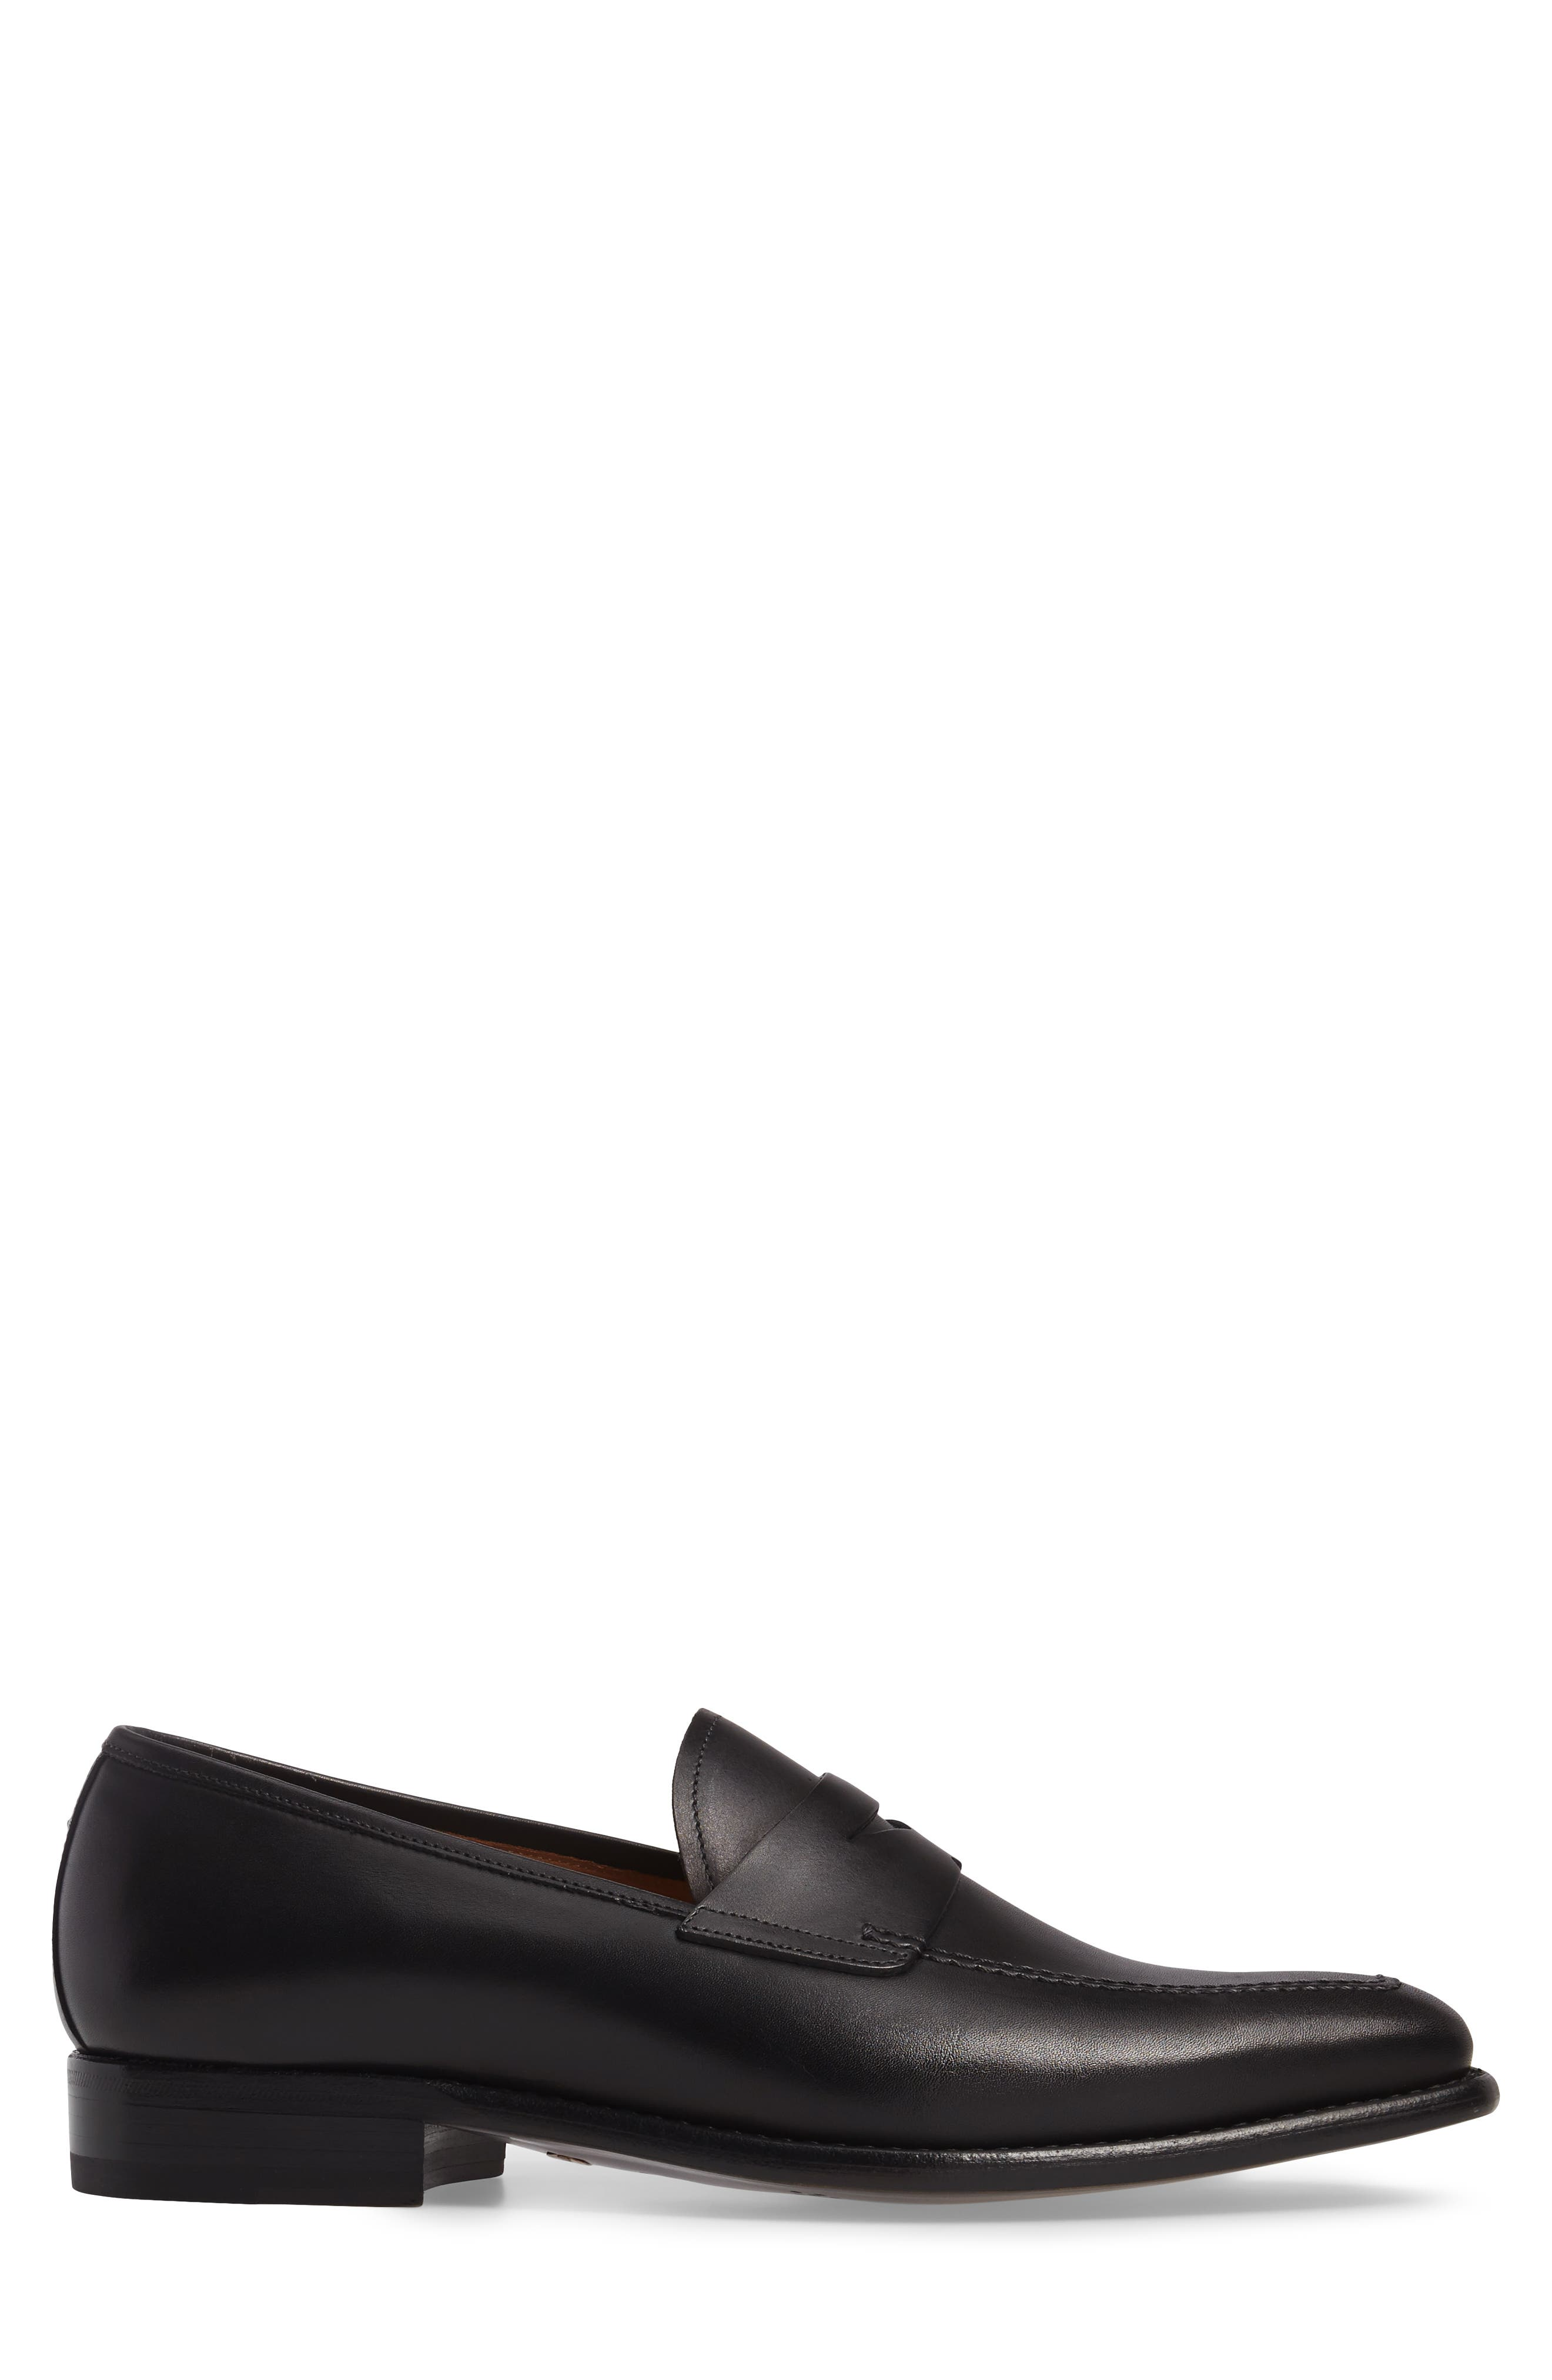 Claude Penny Loafer,                             Alternate thumbnail 3, color,                             008